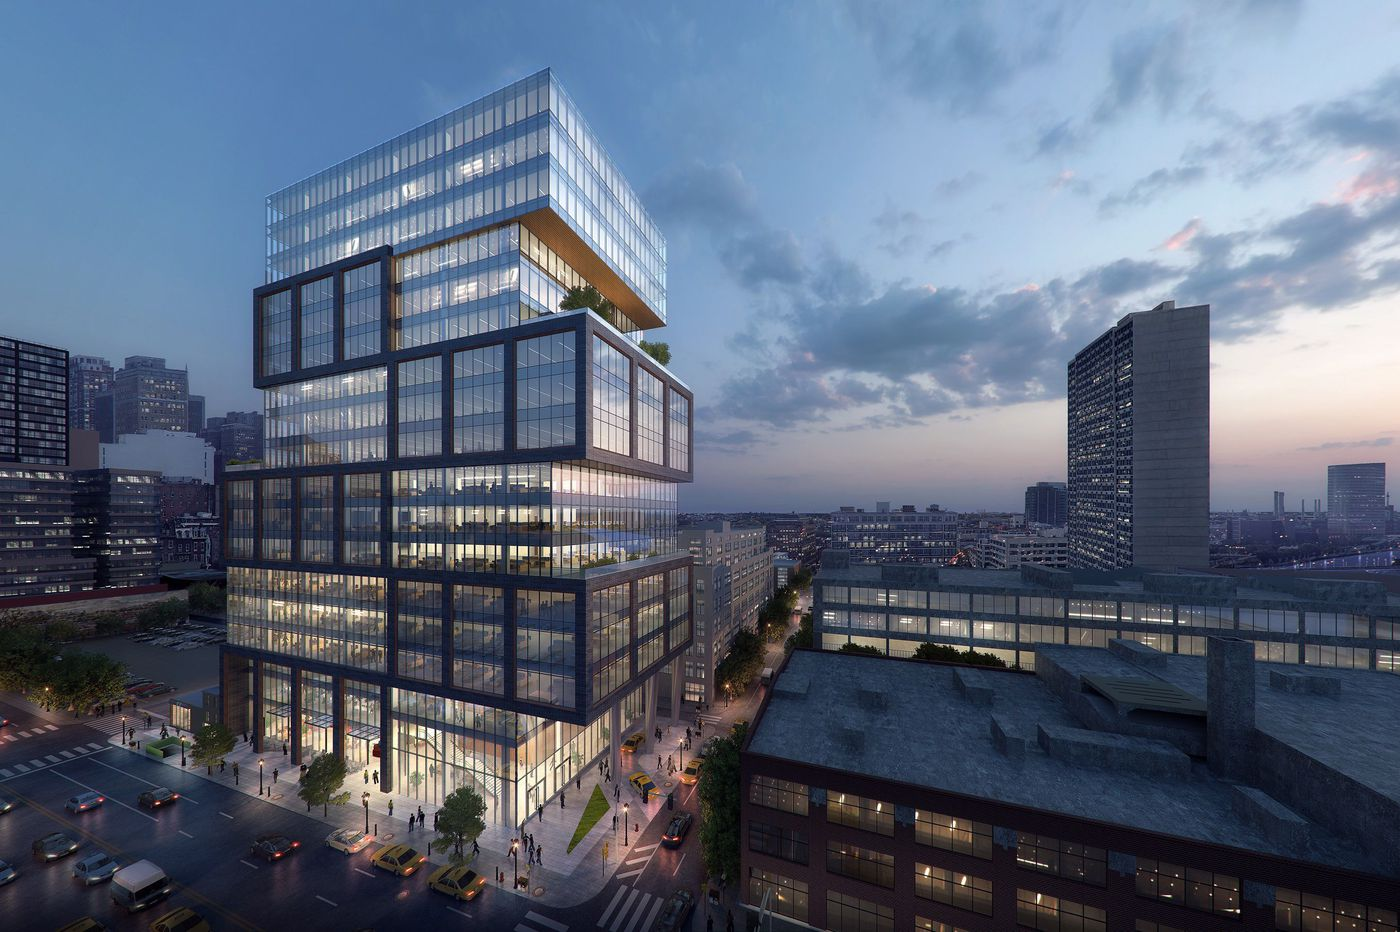 Plan for new law firm HQ tower on Market Street receives upbeat welcome from neighborhood committee